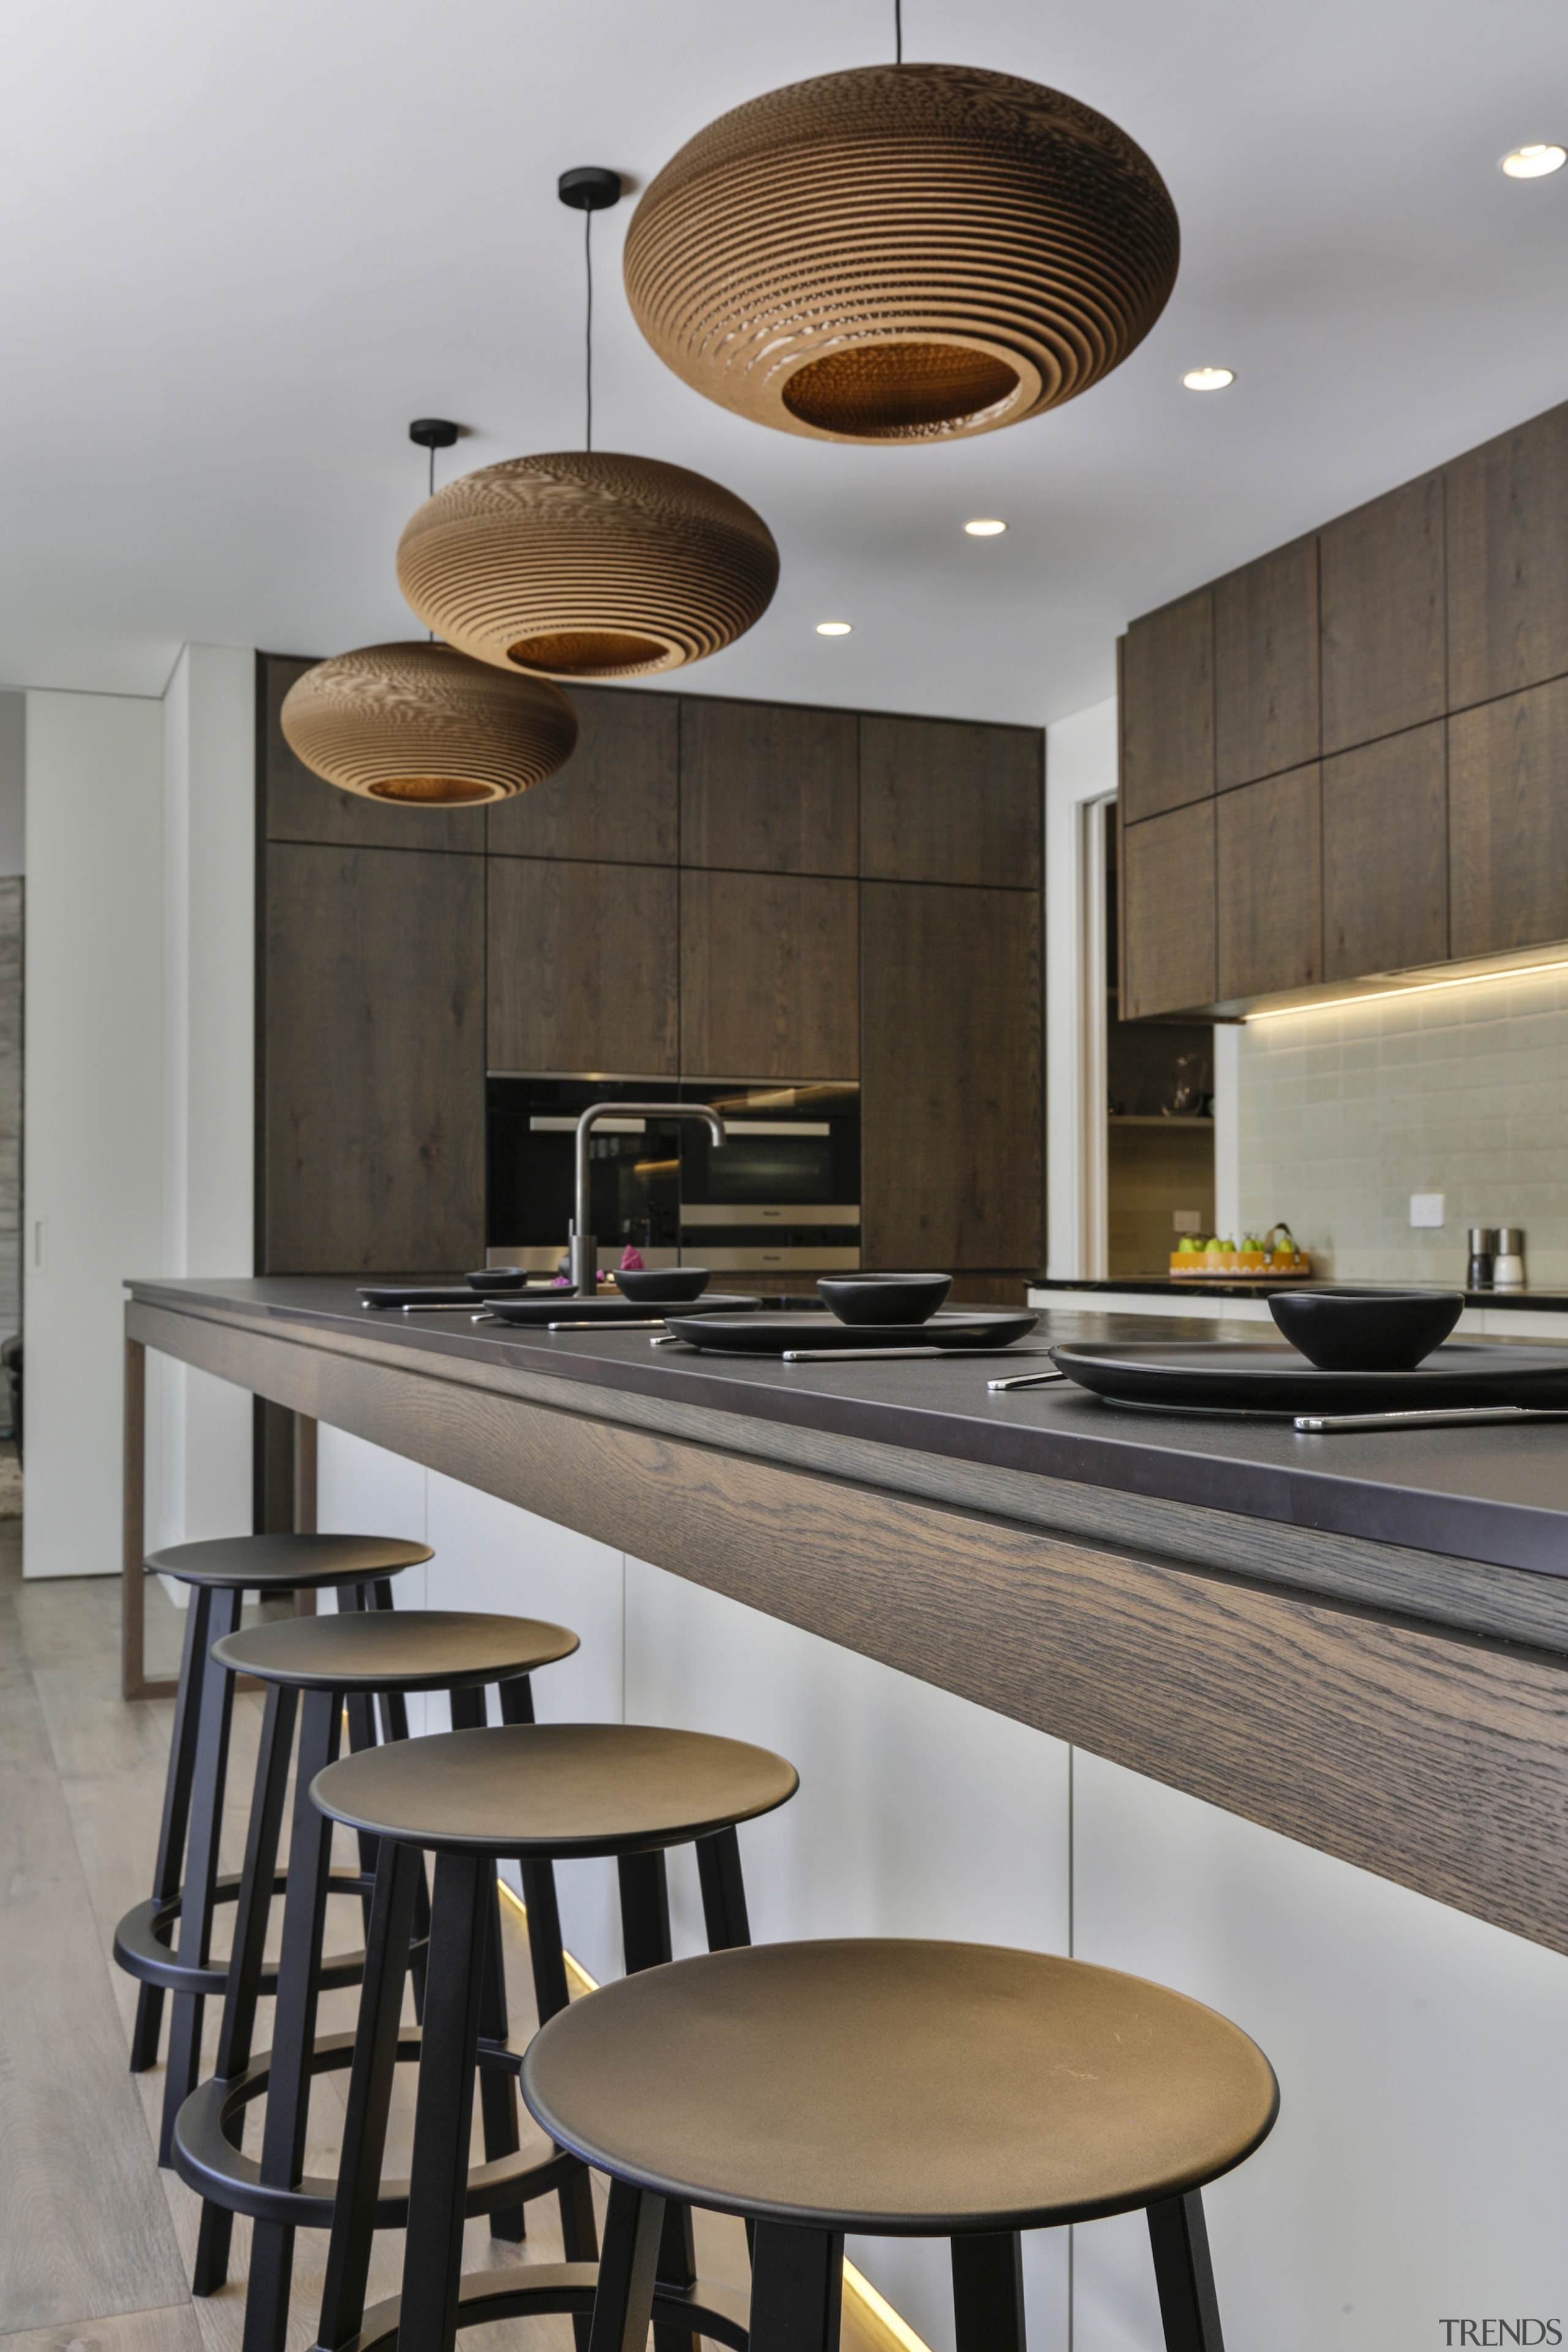 The breakfast bar stools fall into line with